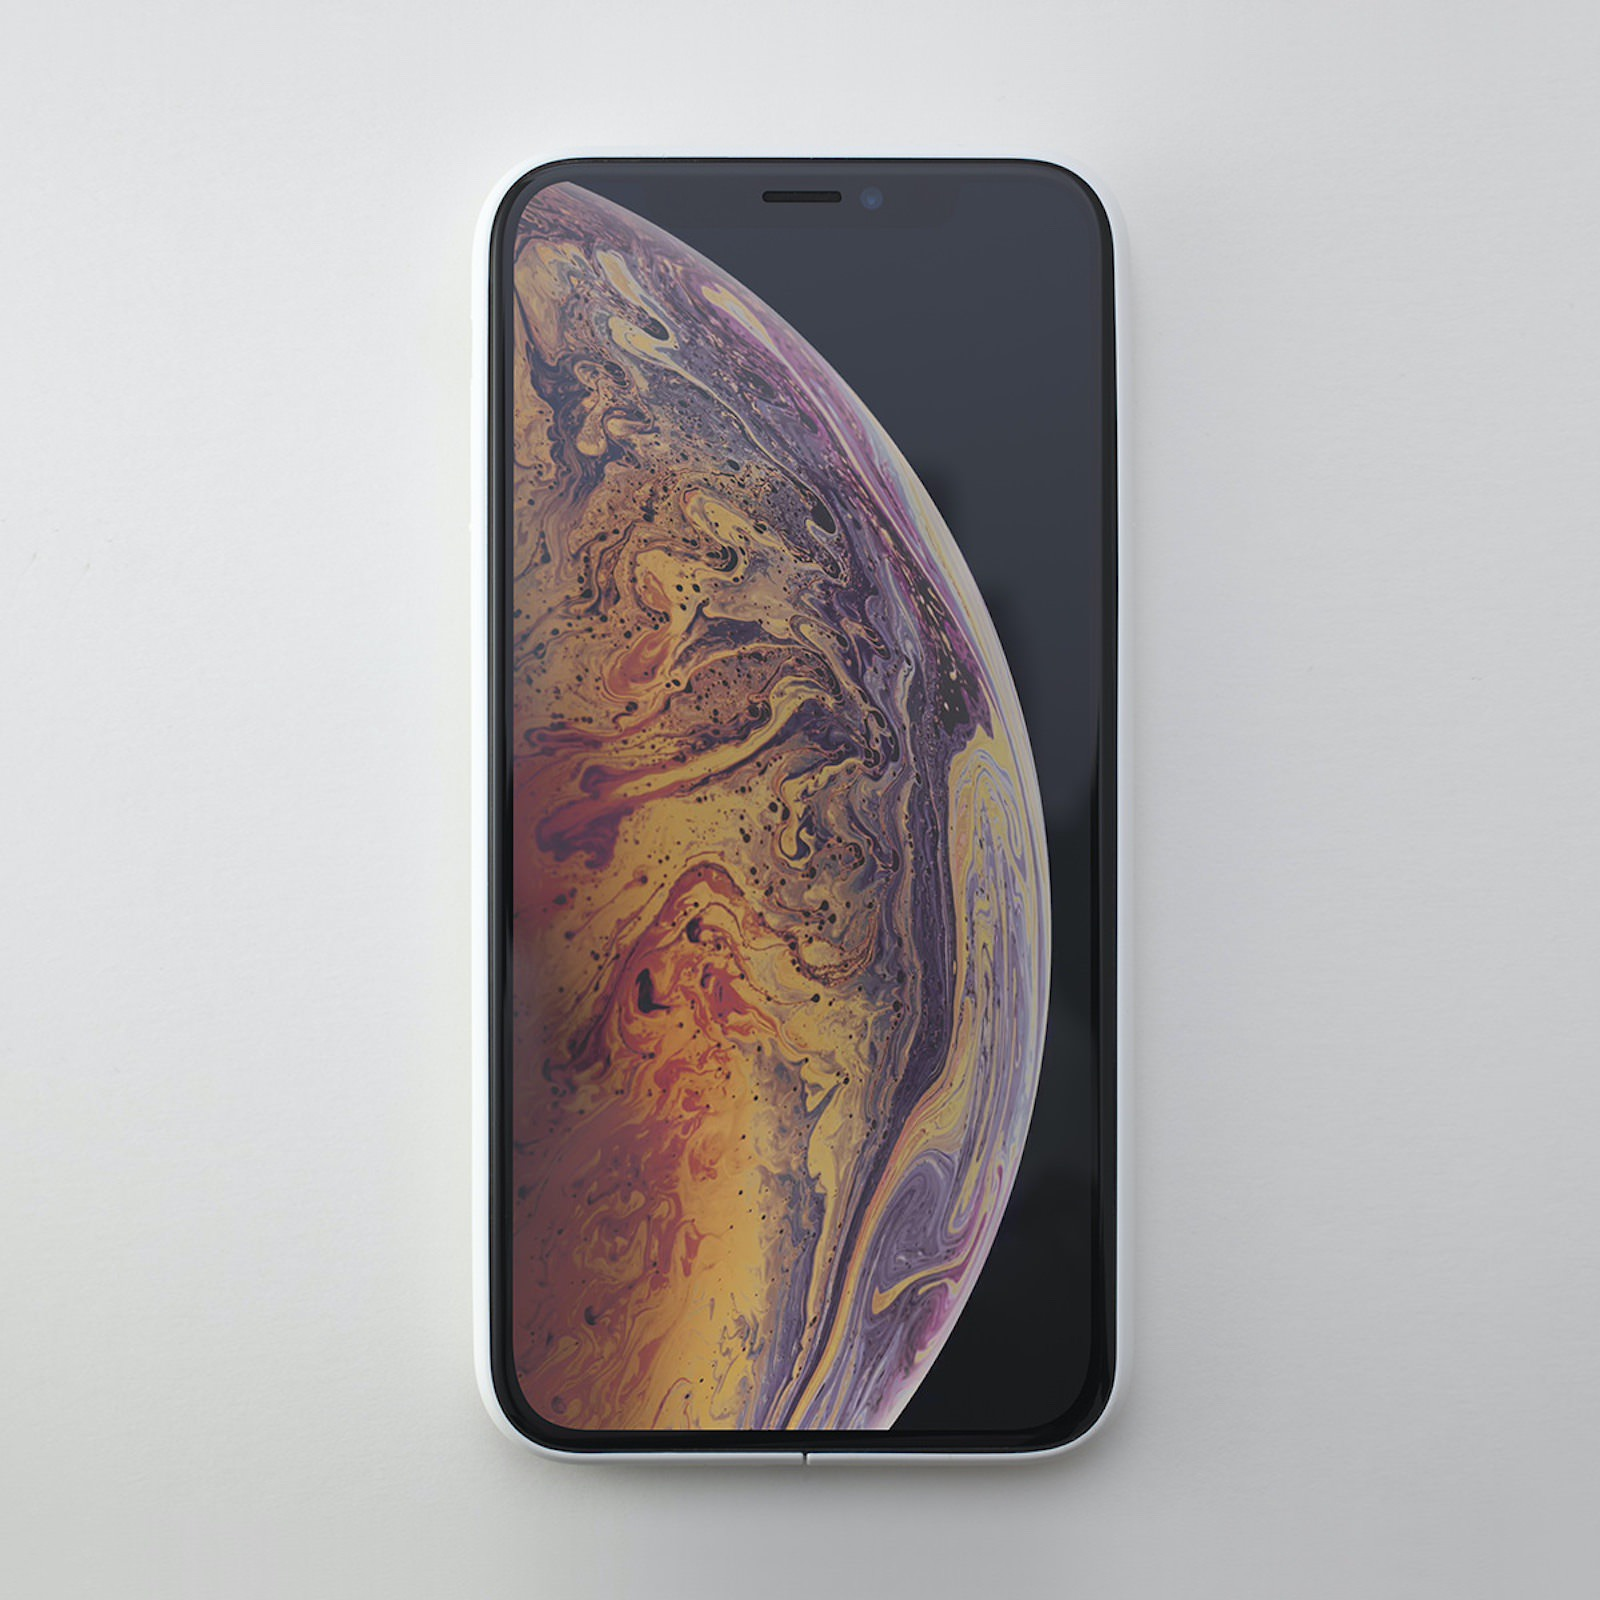 MYNUS-iPhone-XS-Case-05.jpg